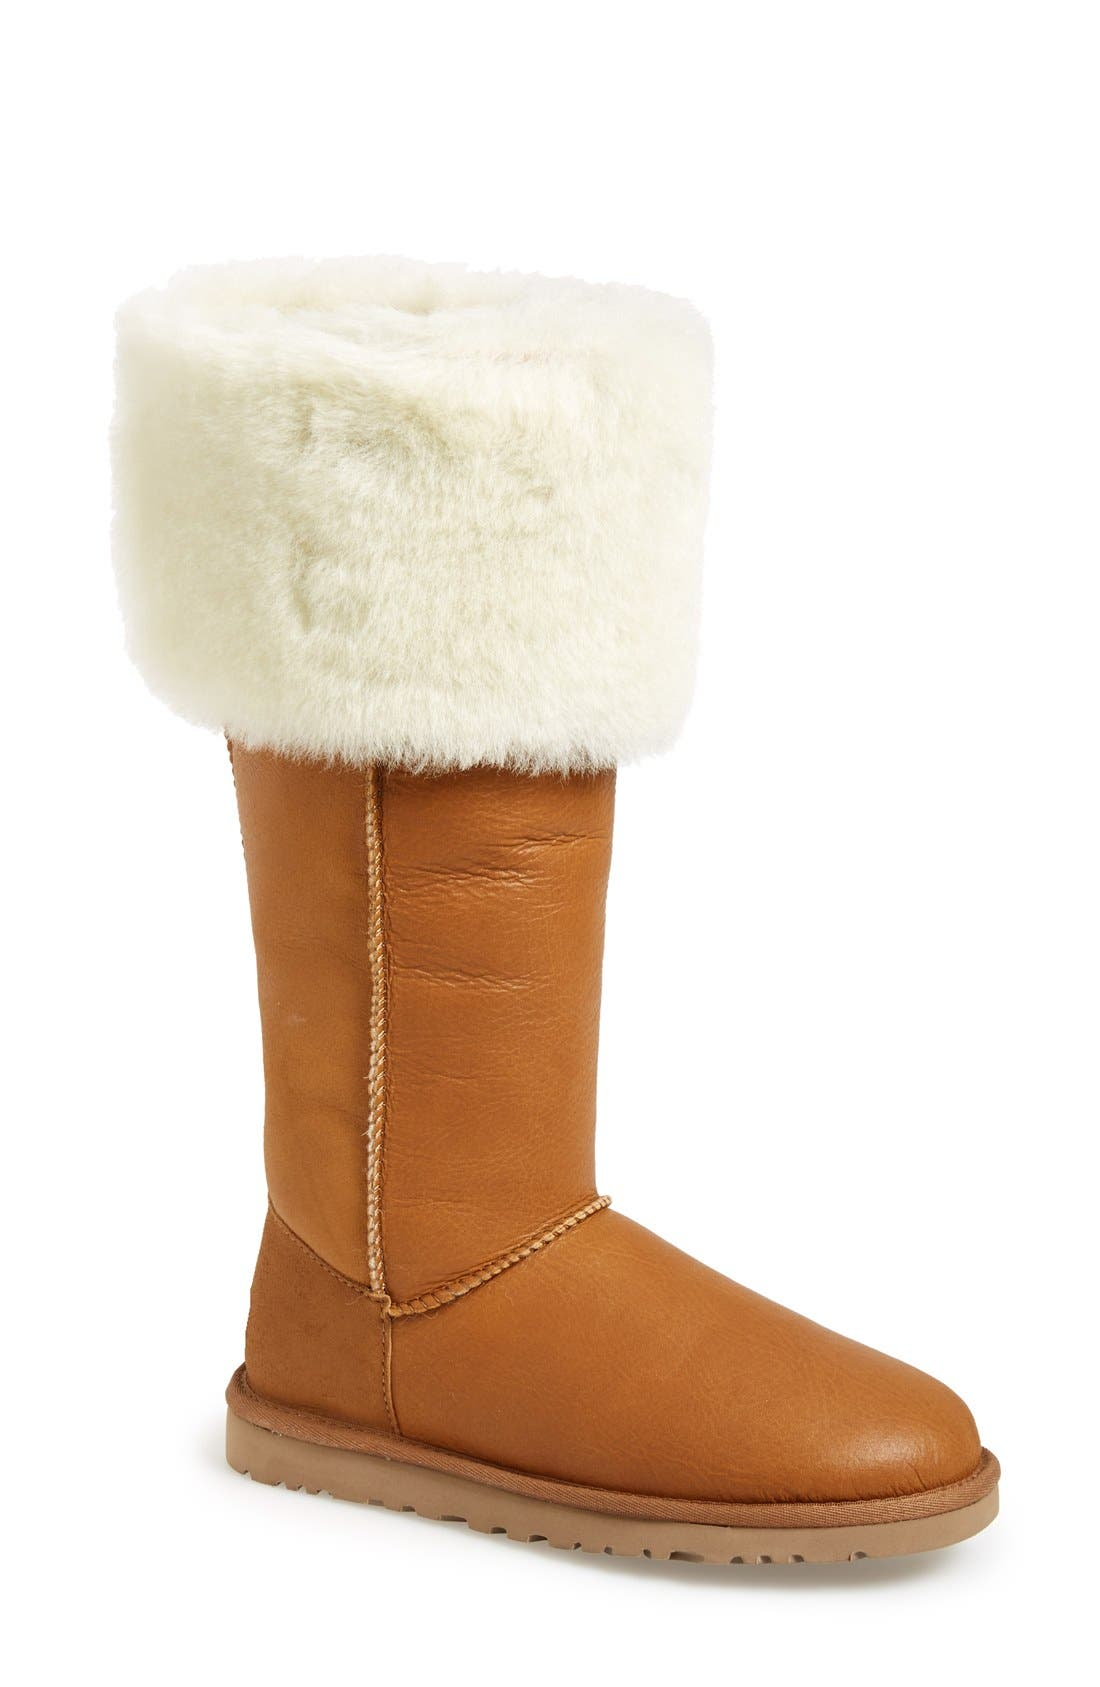 'Devandra' Convertible Over the Knee Boot,                             Main thumbnail 1, color,                             214